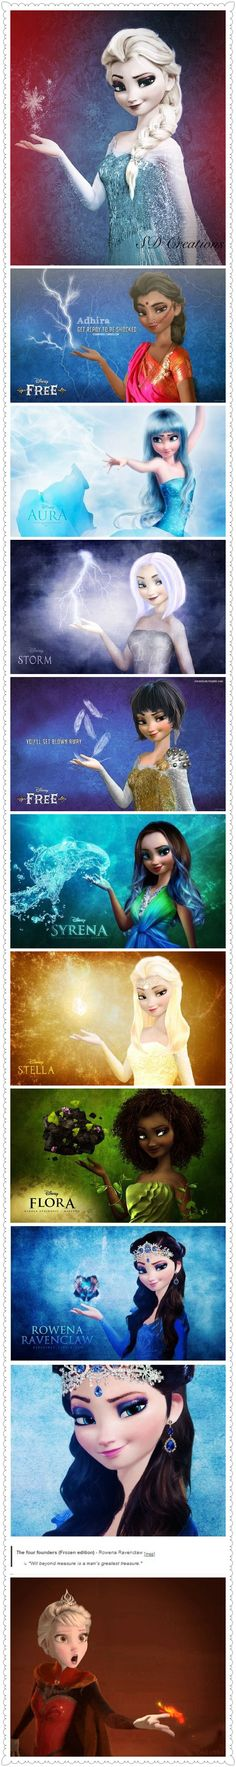 Frozen~ different Elsas -- yay in pinterest form now